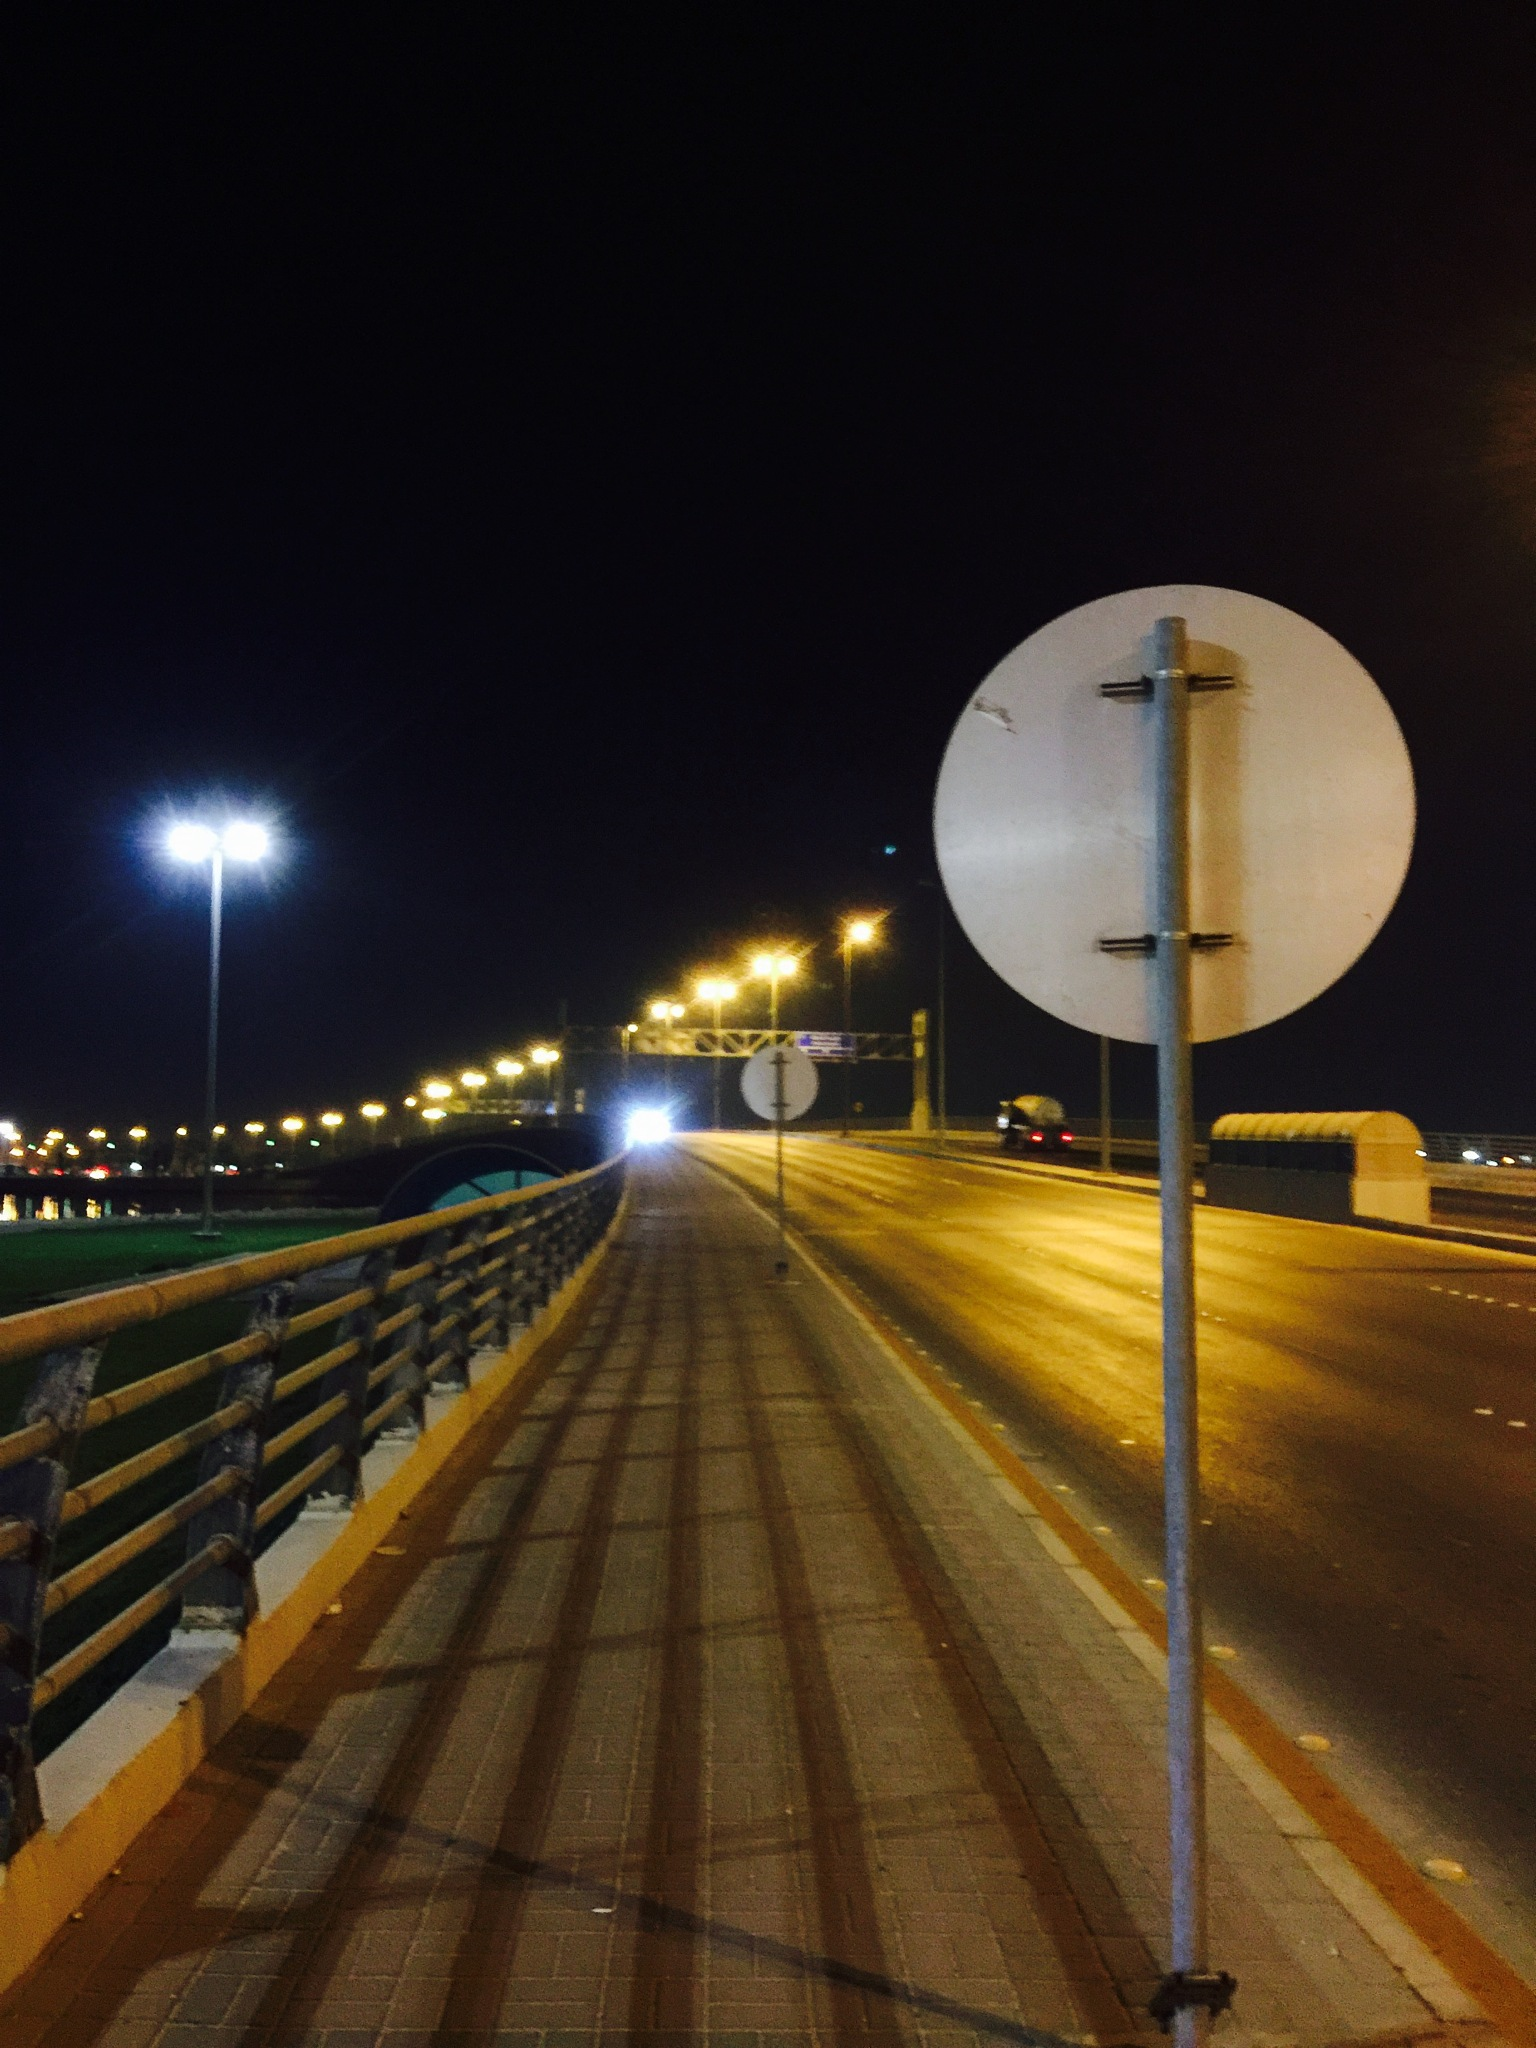 Success lies in the opposite direction of normal pull. by Sadiq Ali AlQatari